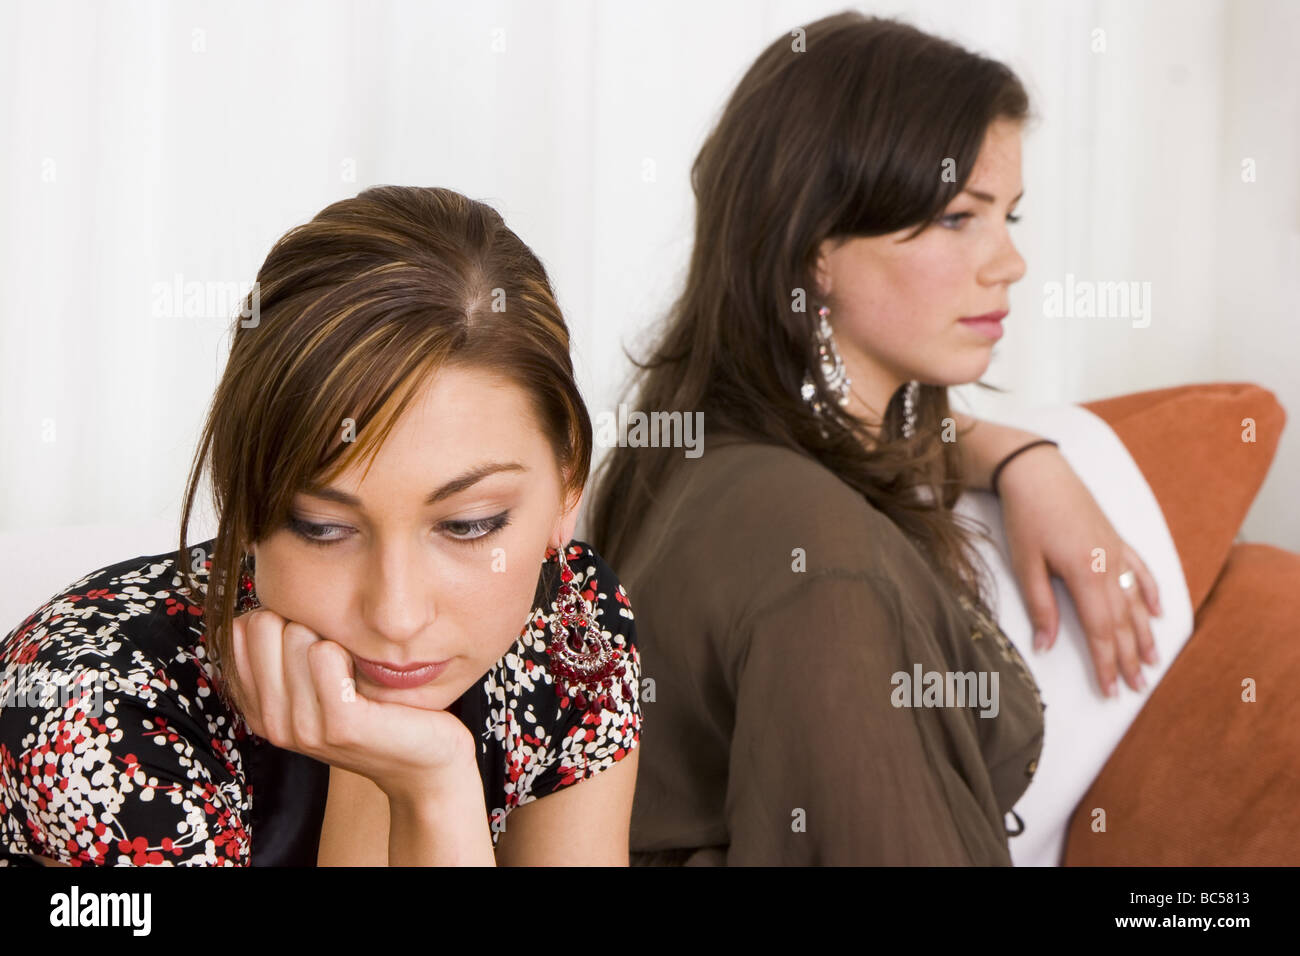 Two teenage girls sit silent on sofa, back to back, angry crossed and headstrong with each other, by discord.   - Stock Image